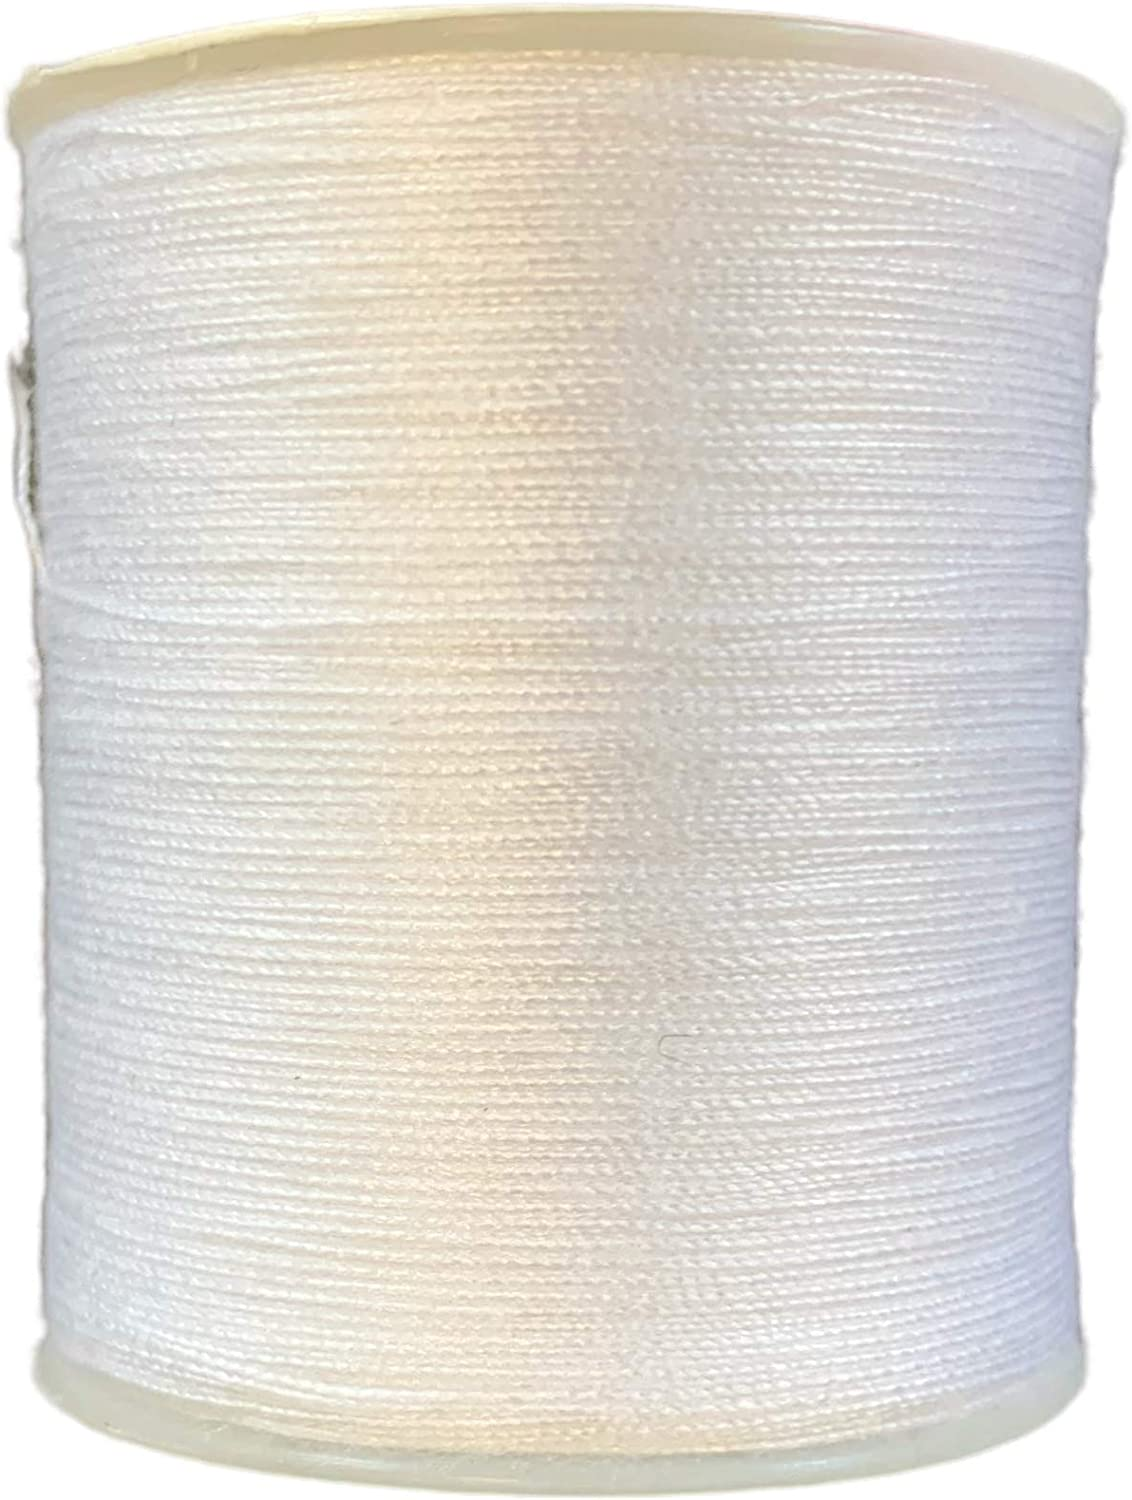 All Purpose Miami Mall Thread 200 Yards White for One Max 89% OFF and Spool Repairs Sew